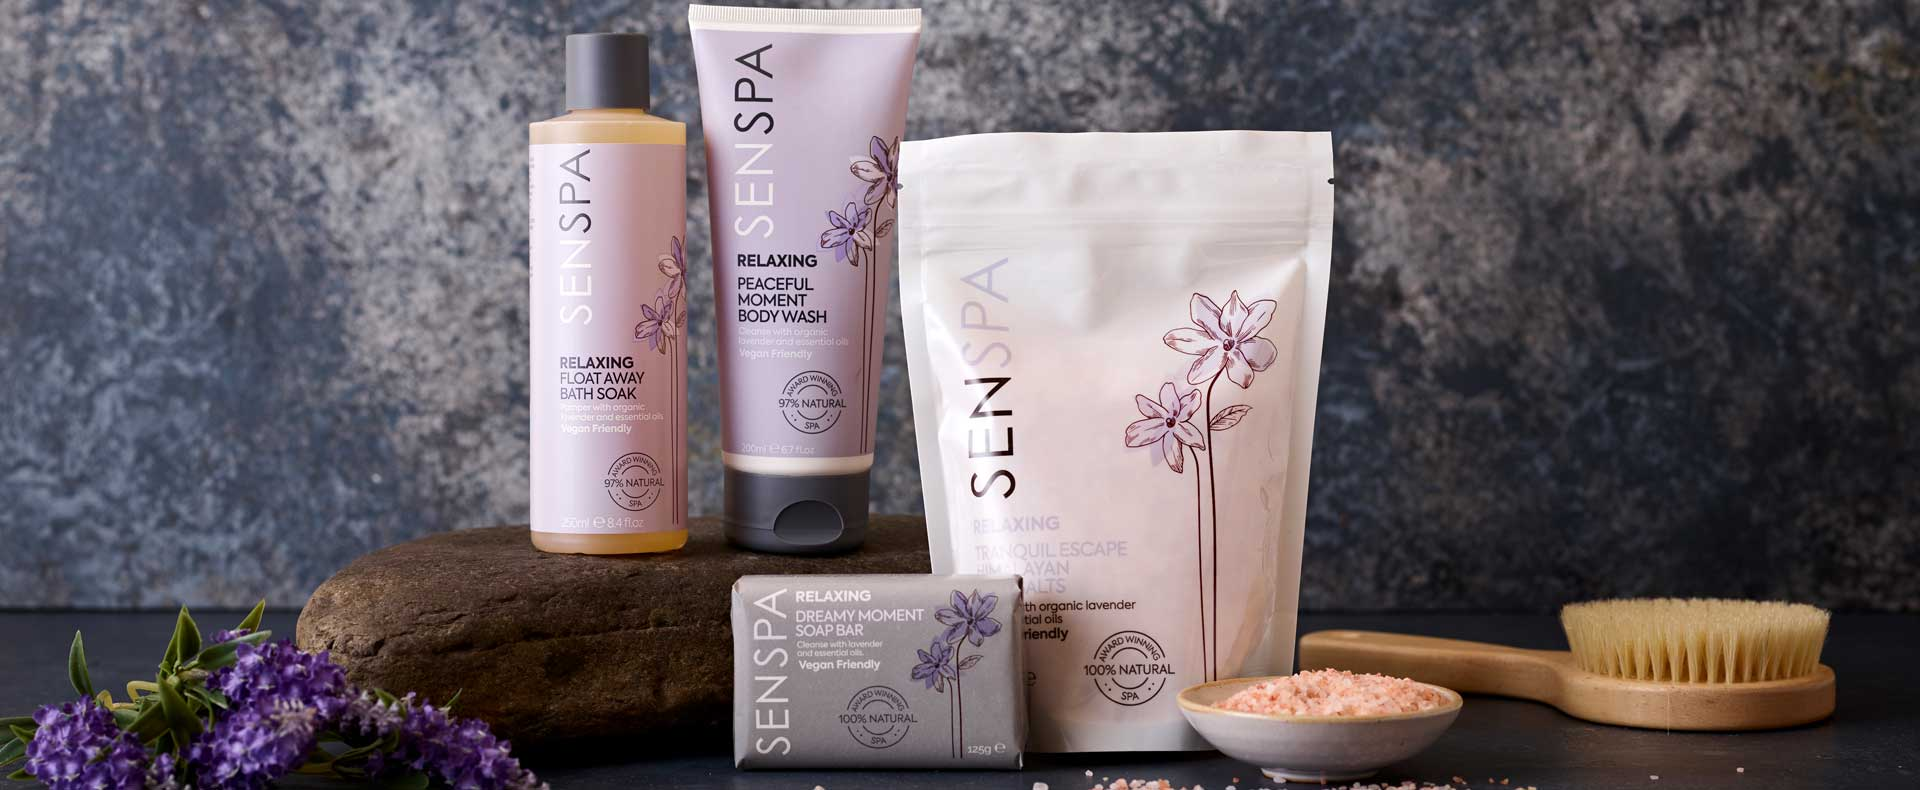 SenSpa-Relaxation-Range | SenSpa at Careys Manor